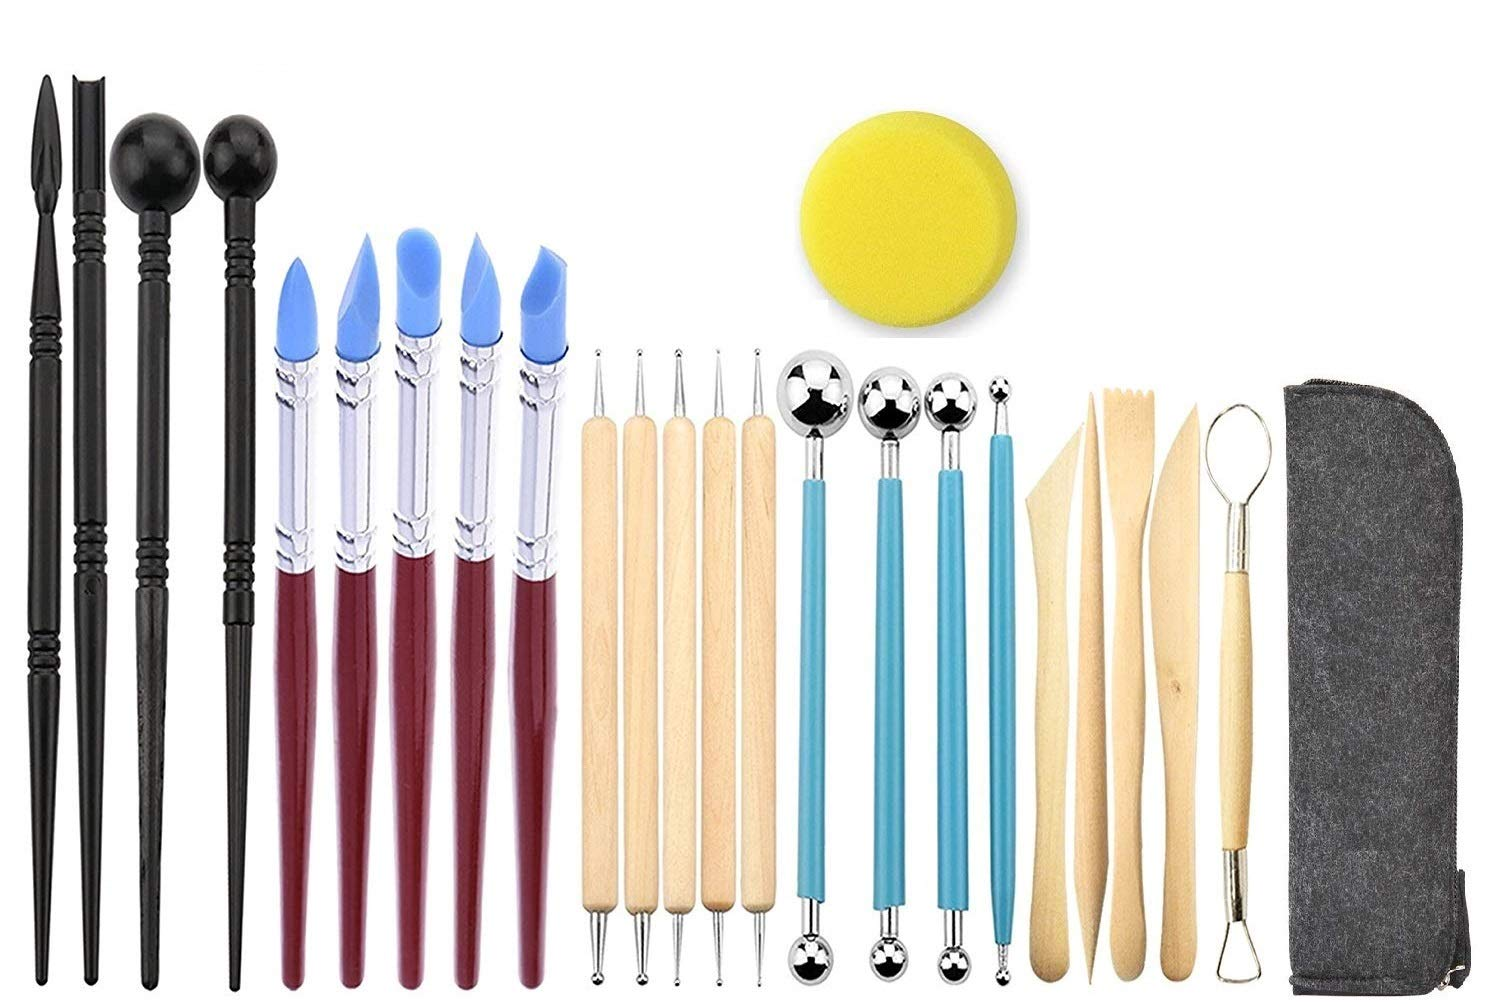 Ball Stylus Dotting Sculpting Kit - Jaybva Polymer Clay Pottery Sculptures Tools Rubber Tip Pens for Rock Painting Ceramics Doll Modeling Carving Embossing Paper Flowers 24pcs